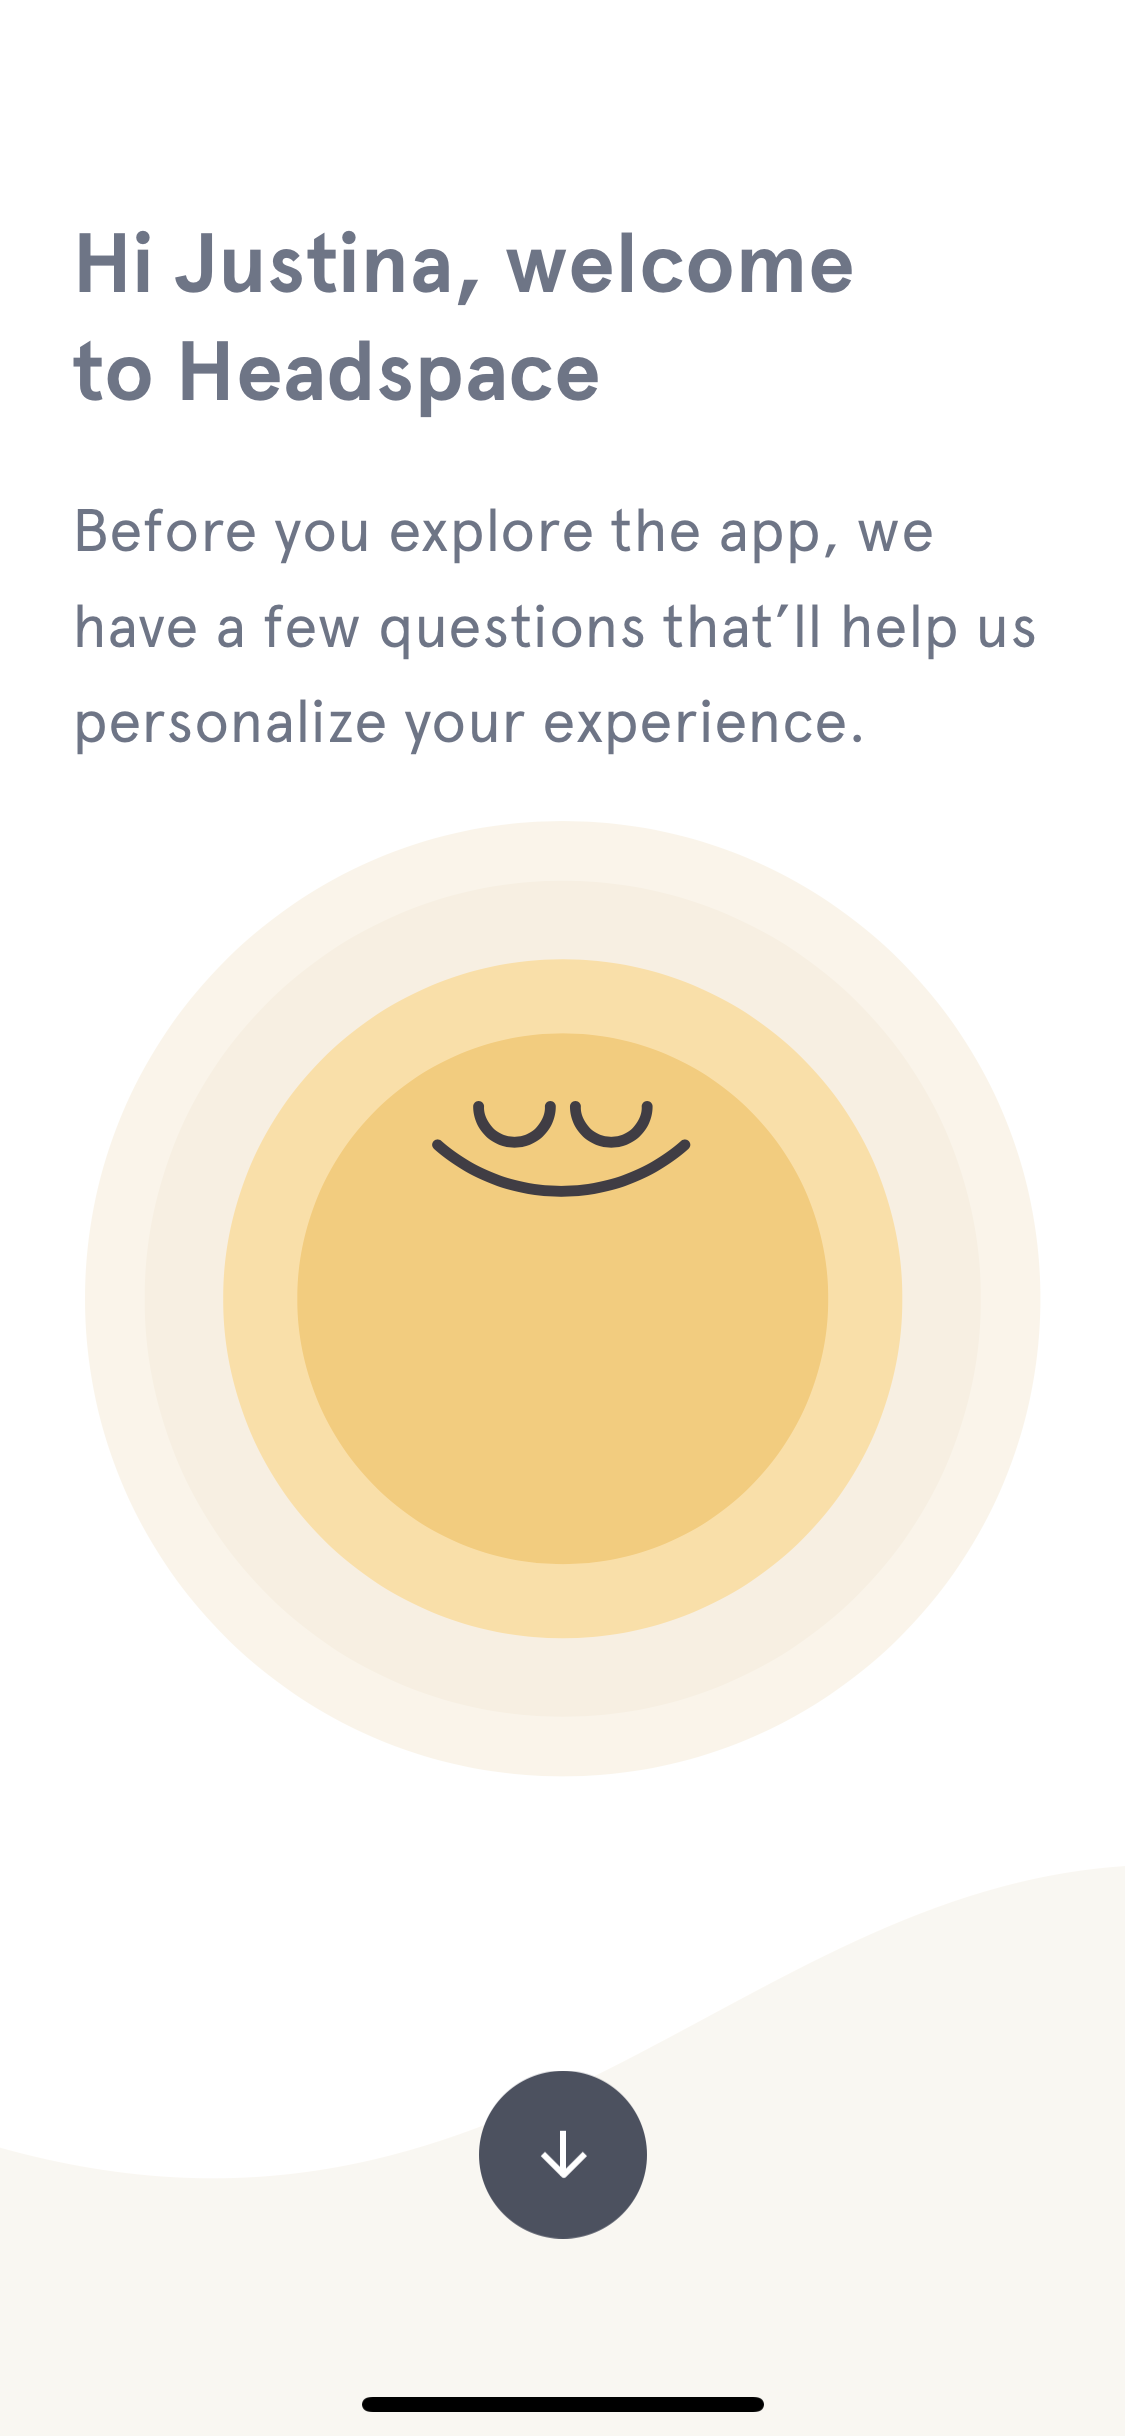 headspace mobile app welcome message personalization